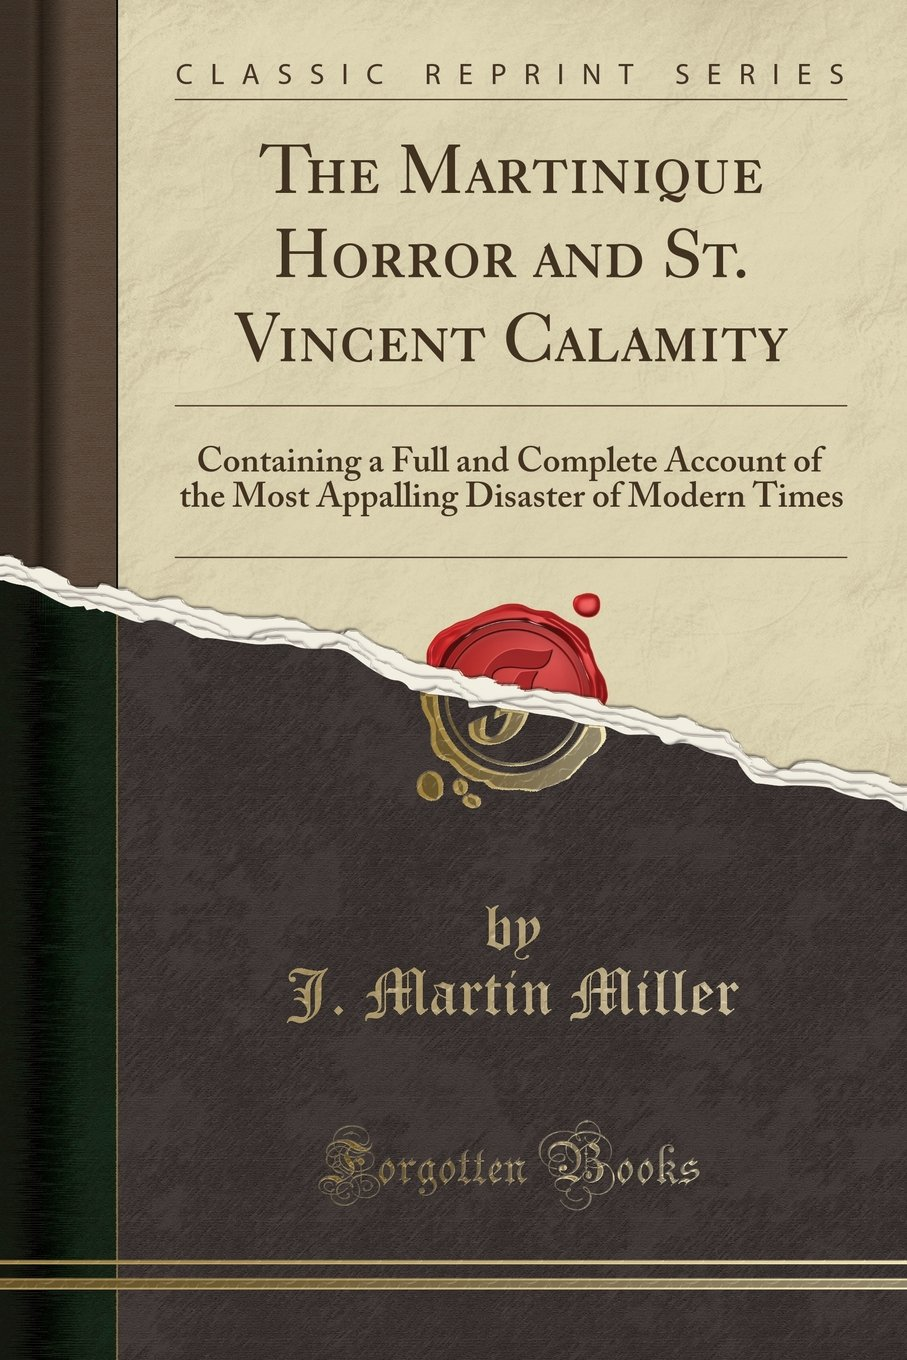 Read Online The Martinique Horror and St. Vincent Calamity: Containing a Full and Complete Account of the Most Appalling Disaster of Modern Times (Classic Reprint) PDF